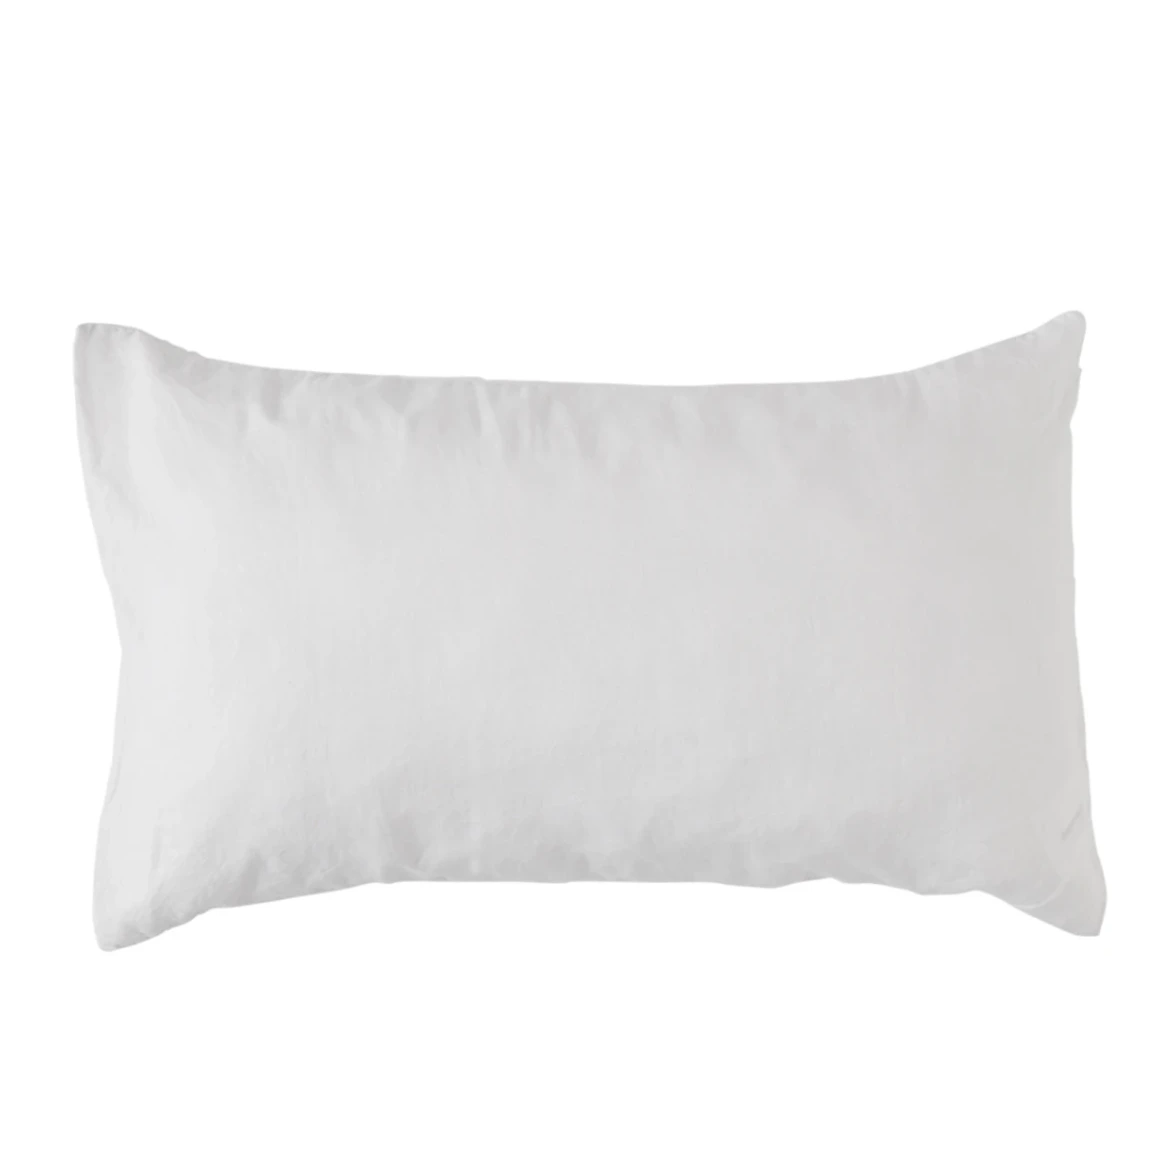 Society Of Wanderers Linen Set Of 2 Pillowcases